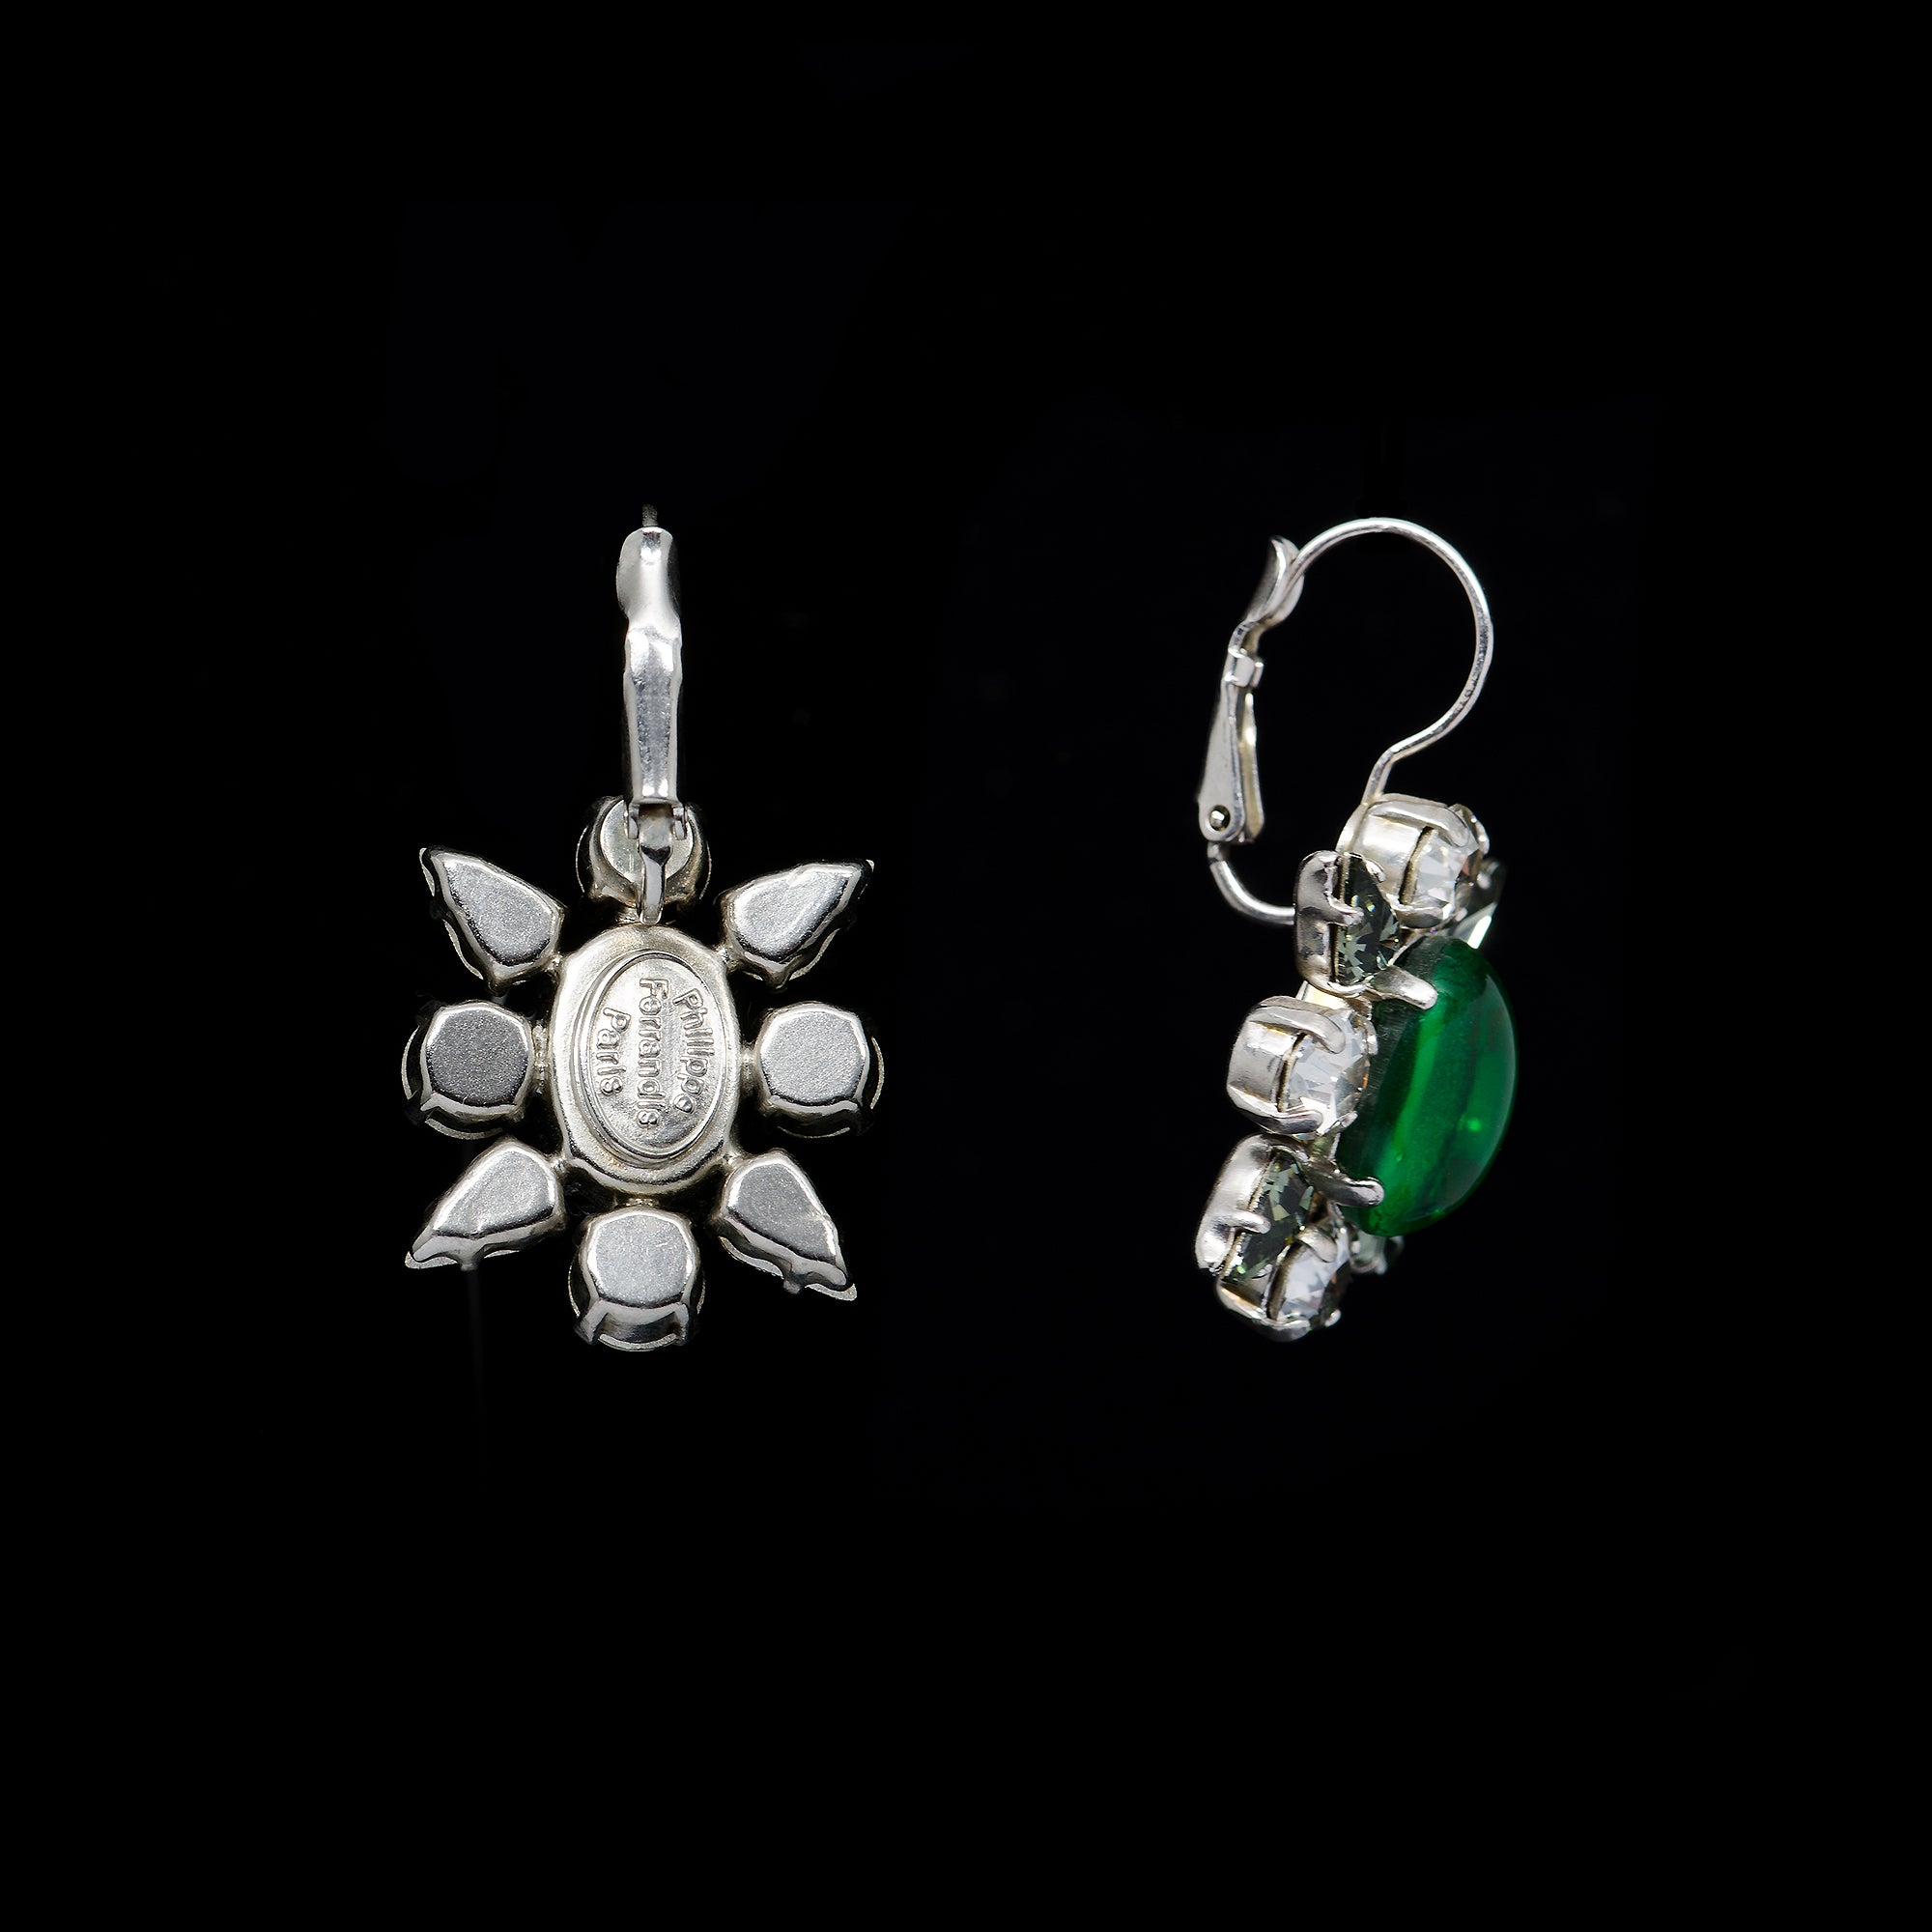 Philippe Ferrandis Glamorous Green Hook Earrings (R210 2/5) back